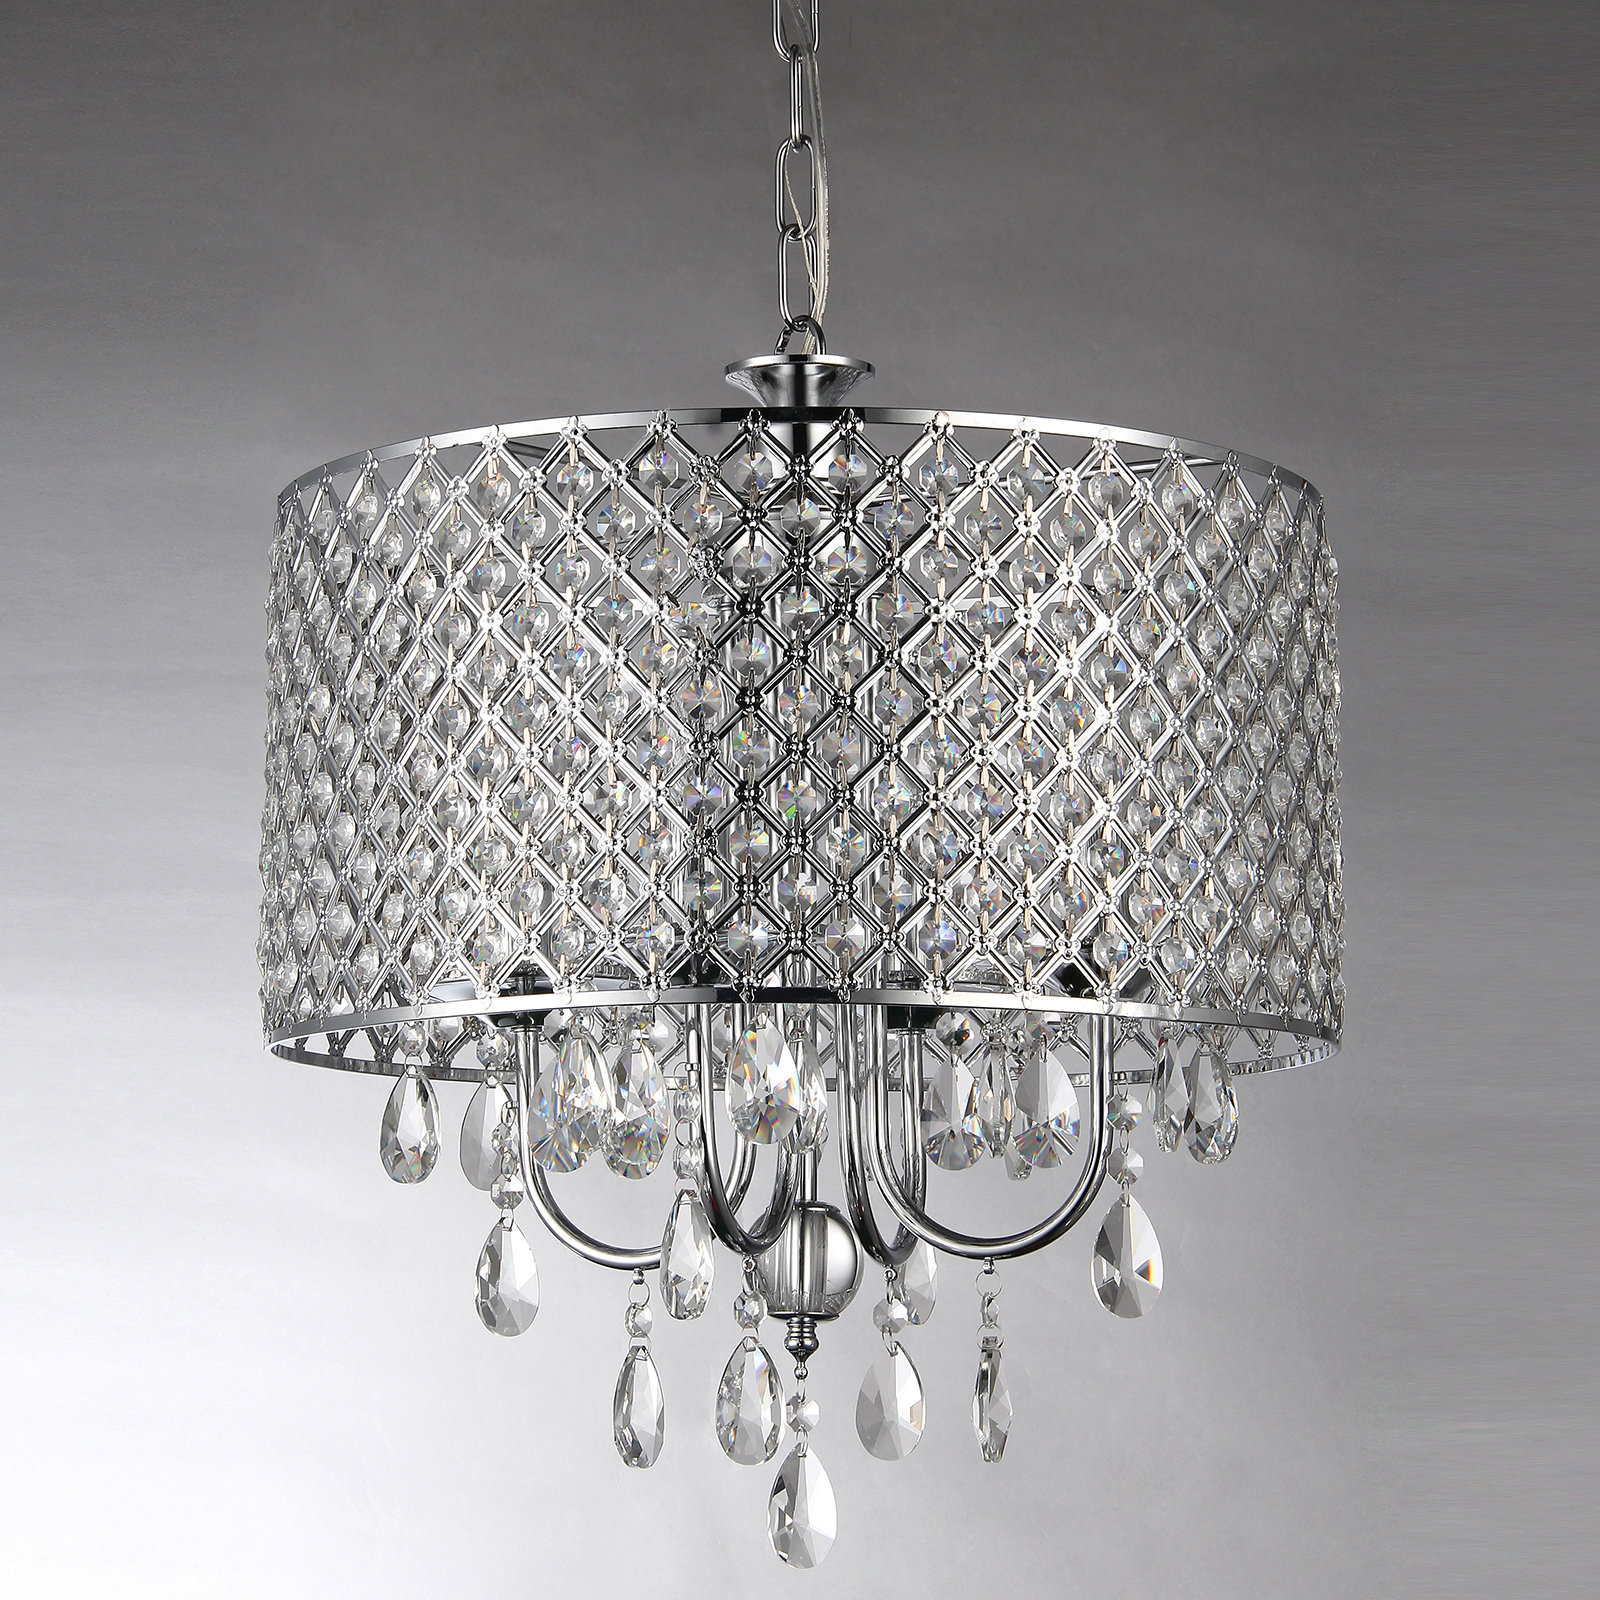 Afaura 4-Light Crystal Chandelier with regard to Sinead 4-Light Chandeliers (Image 1 of 30)